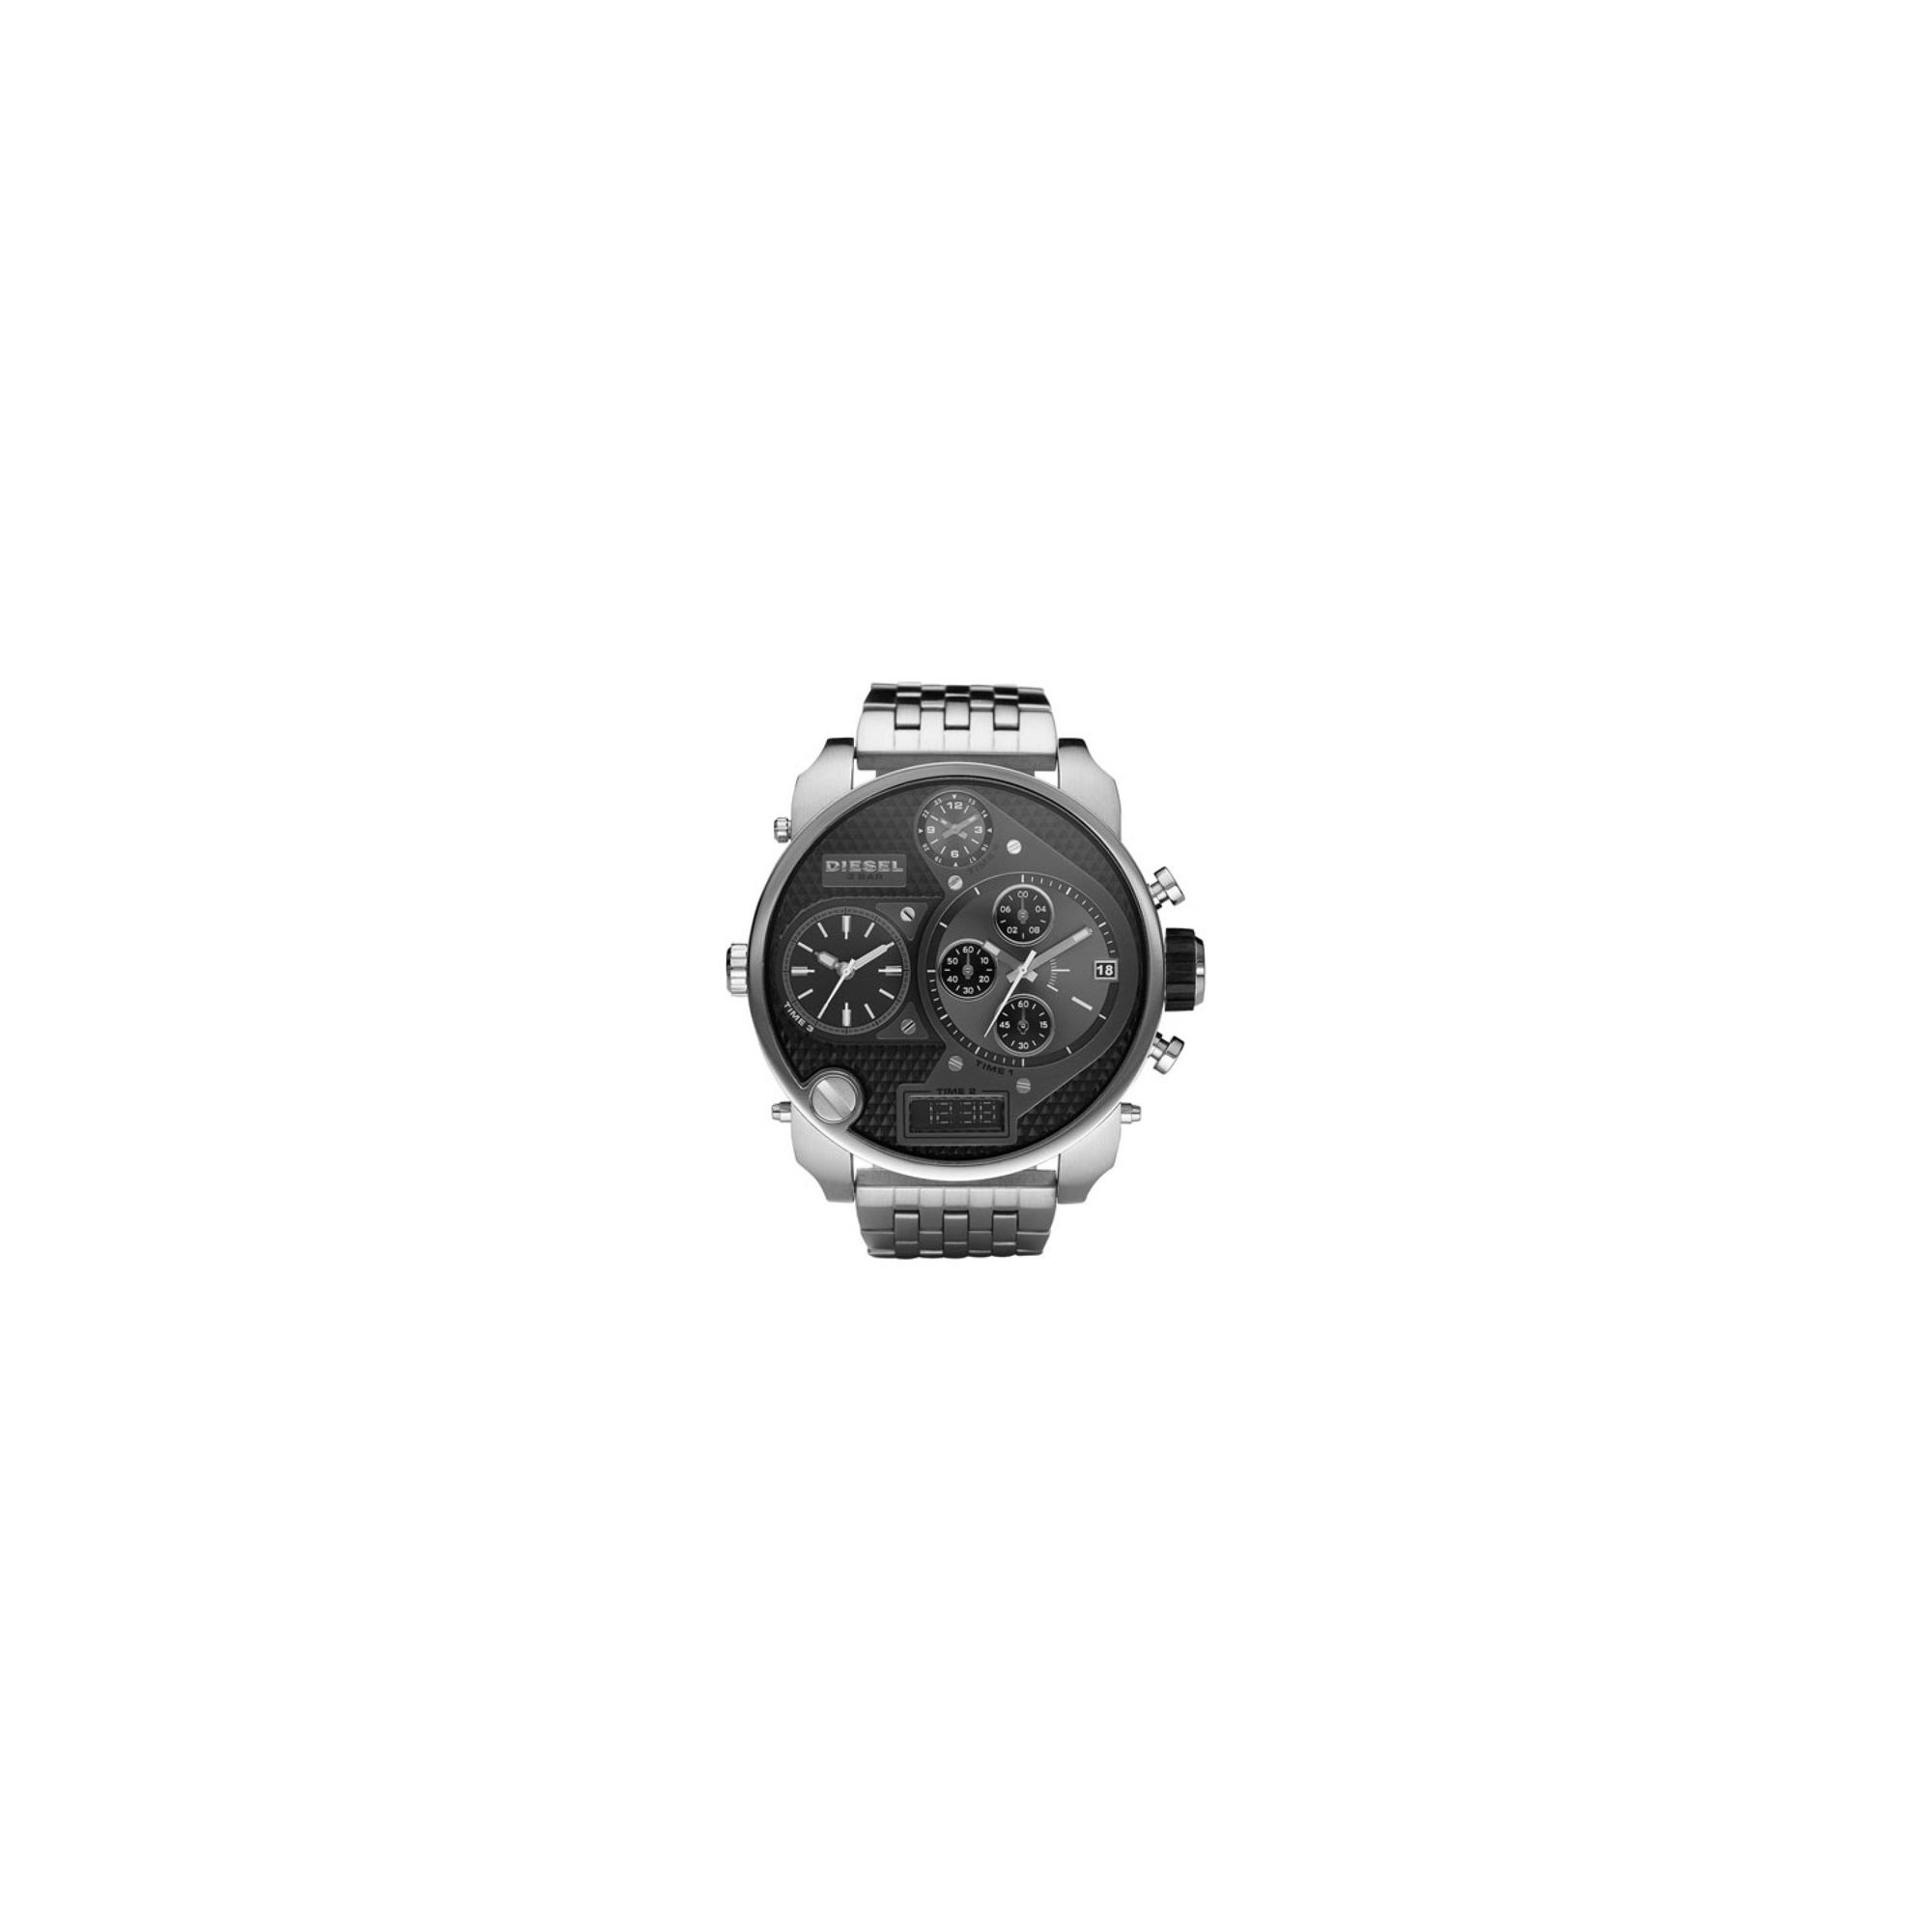 Diesel Gents Stainless Steel Black Multi Dial Watch DZ7221 at Tesco Direct